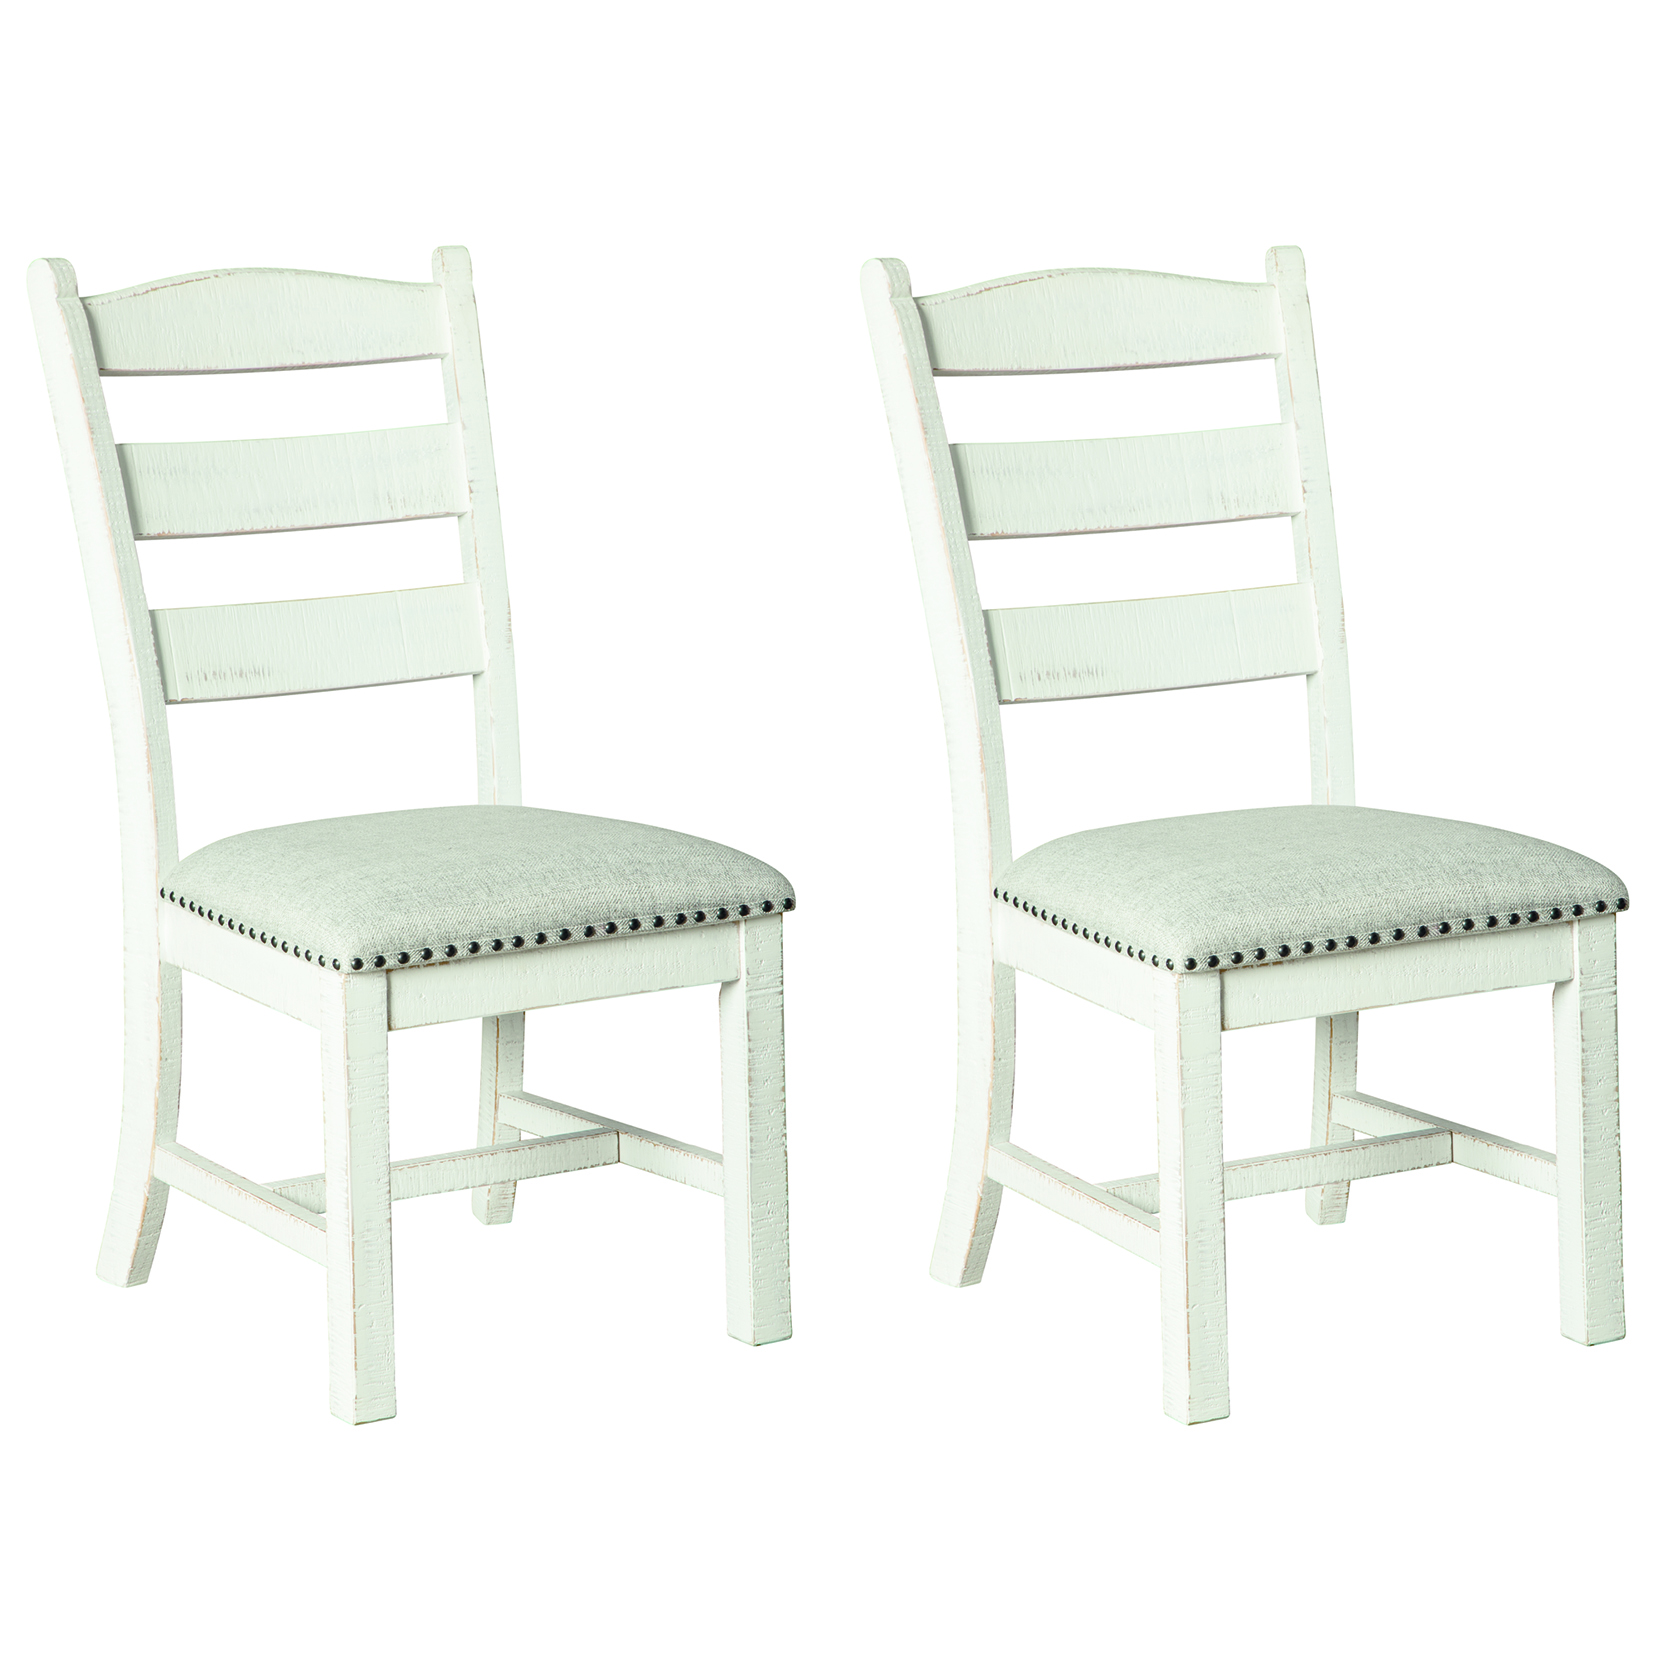 Signature Design By Ashley Valebeck Dining Side Chair Set Of 2 Beige White Walmart Com Walmart Com